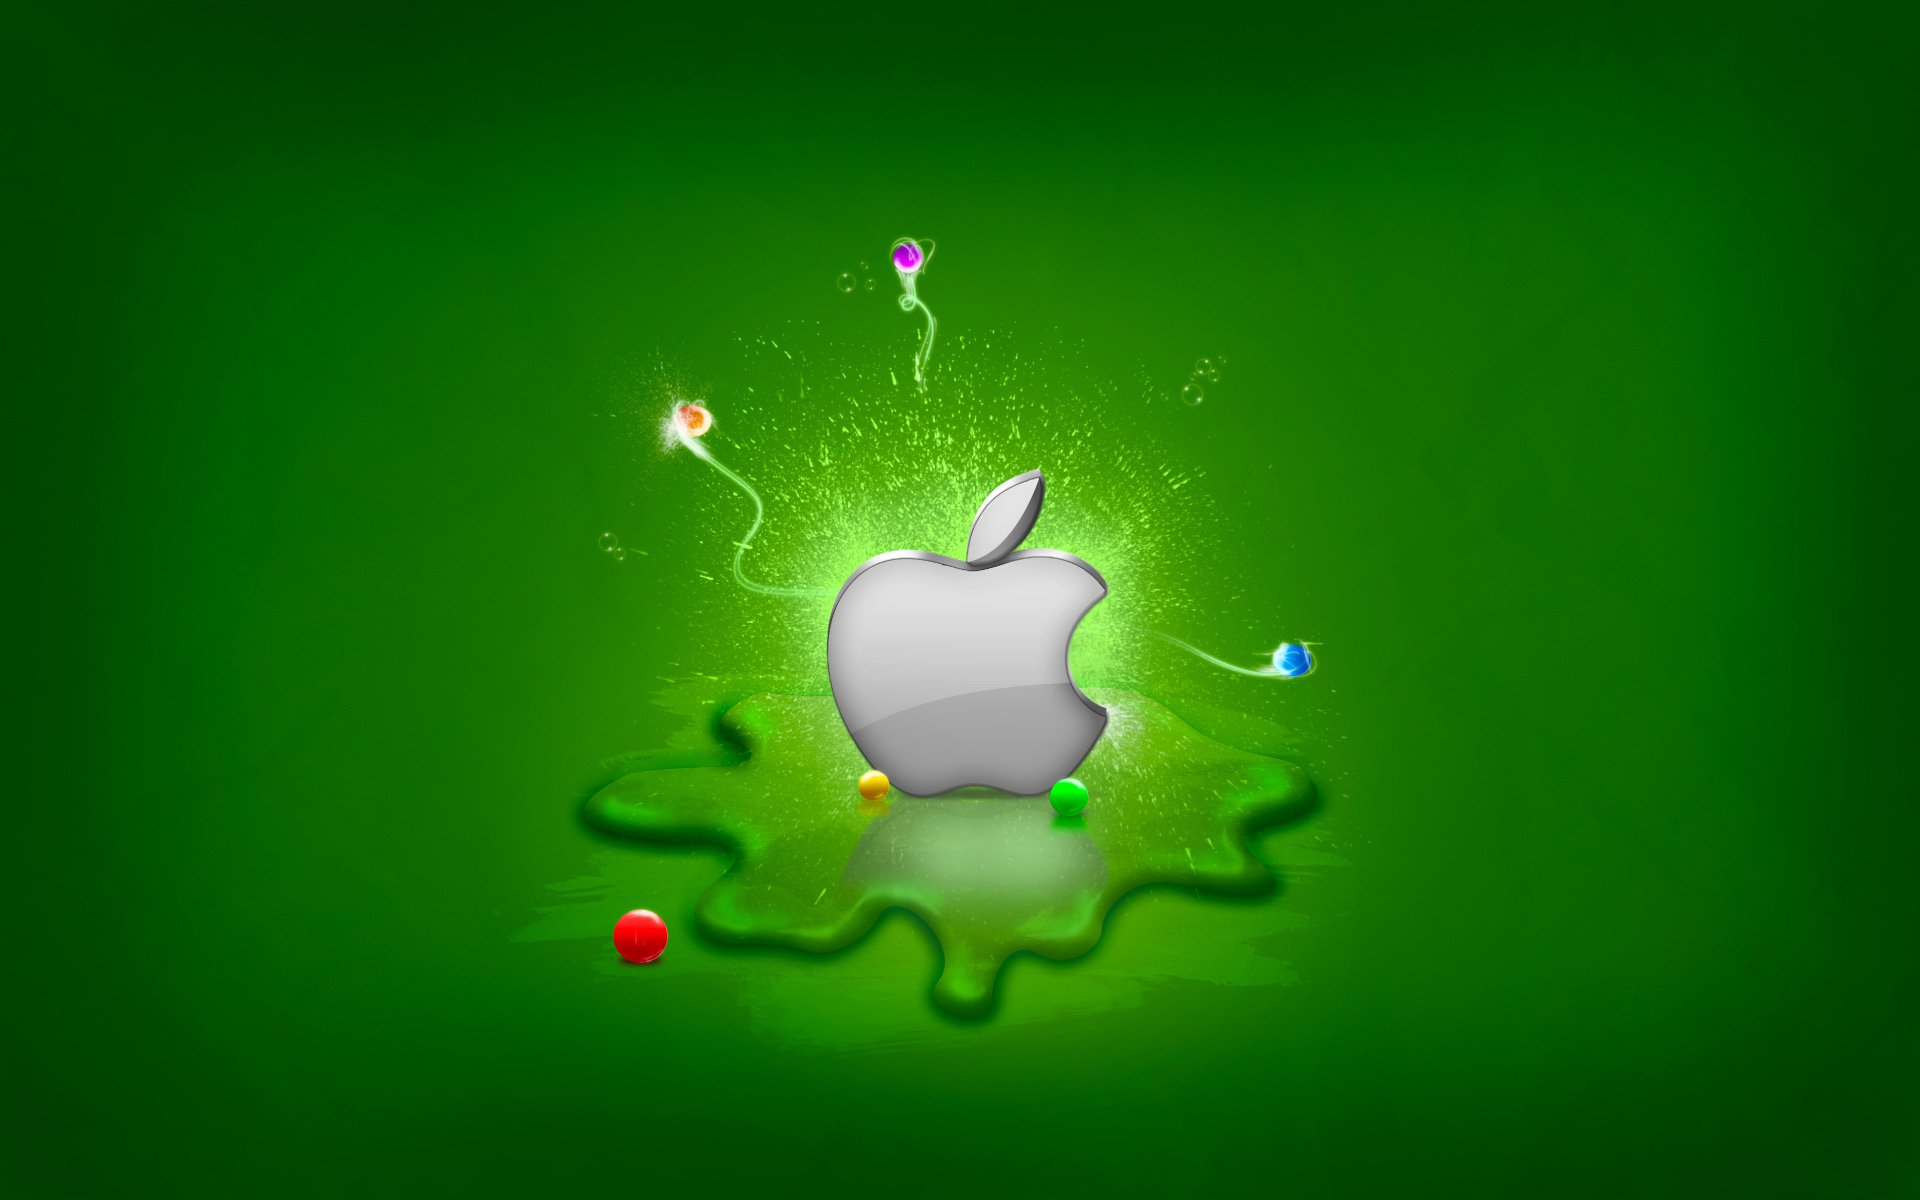 wallpapers 4k-hd Apple-alegorias.es (4)